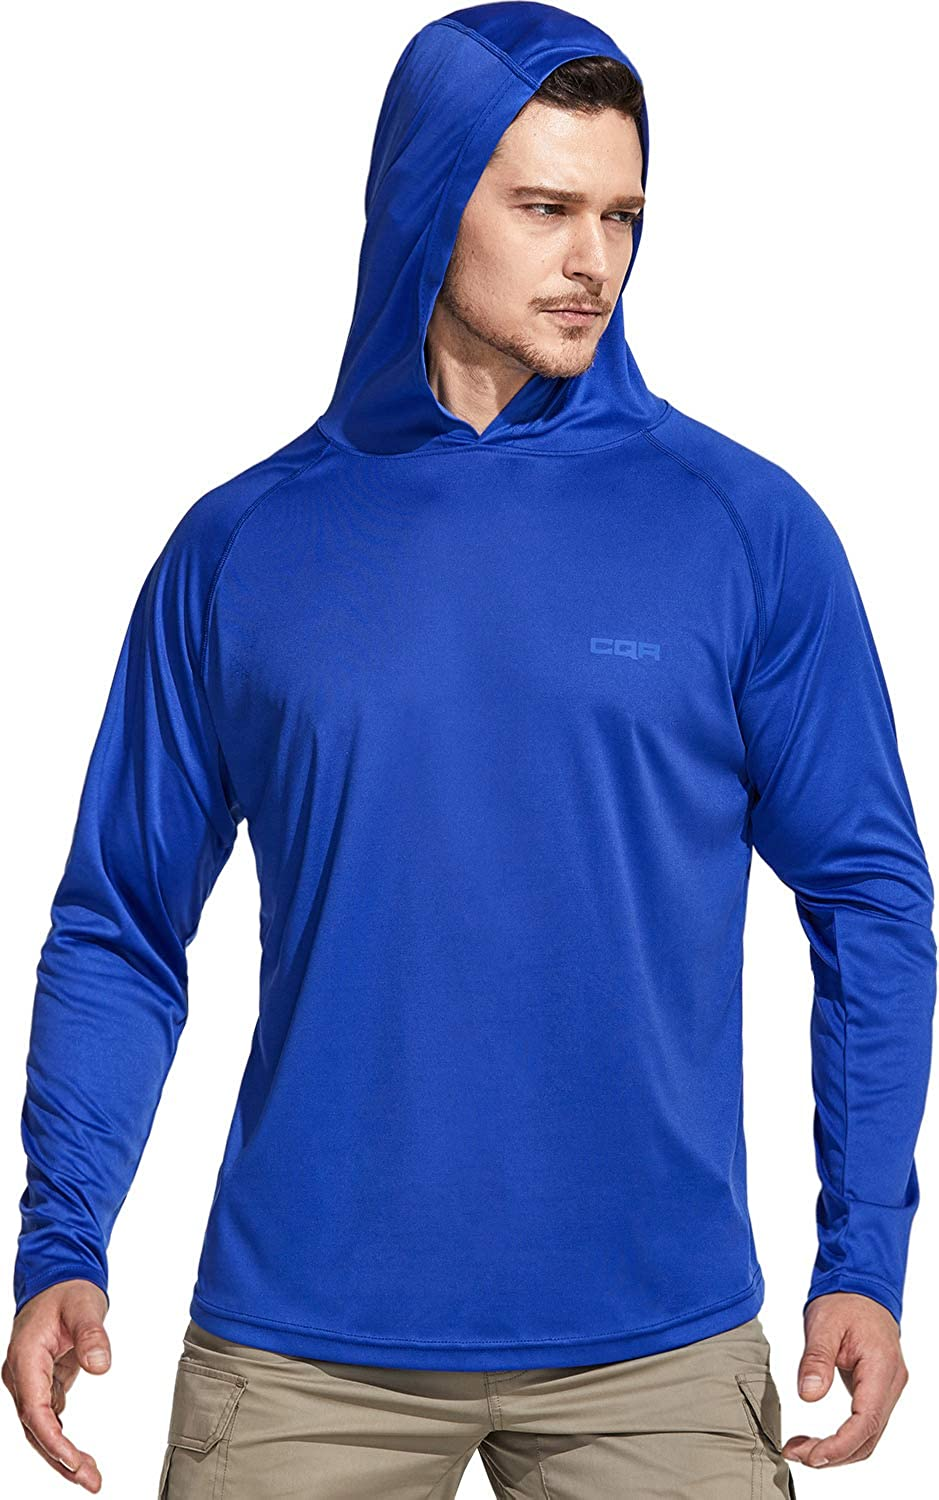 FIRST WAY Womens UPF 50 Sun Protection Shirt with Long Sleeve Hoodie Outdoor Hiking Top